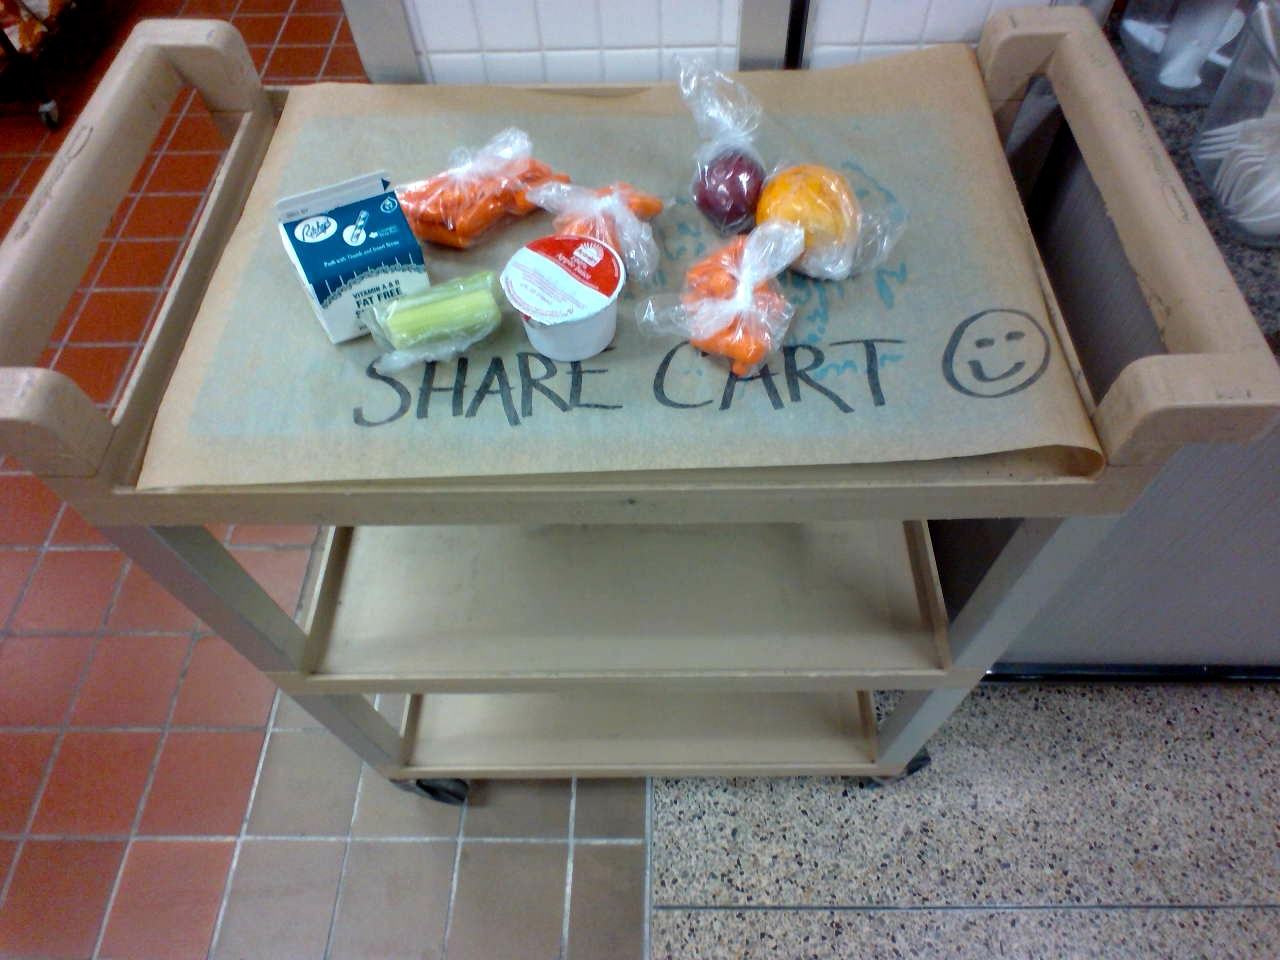 Eating it up!  The share cart gets low on food as the end of C lunch approaches. Students who are still hungry picked up extra food to fill them up for the day.